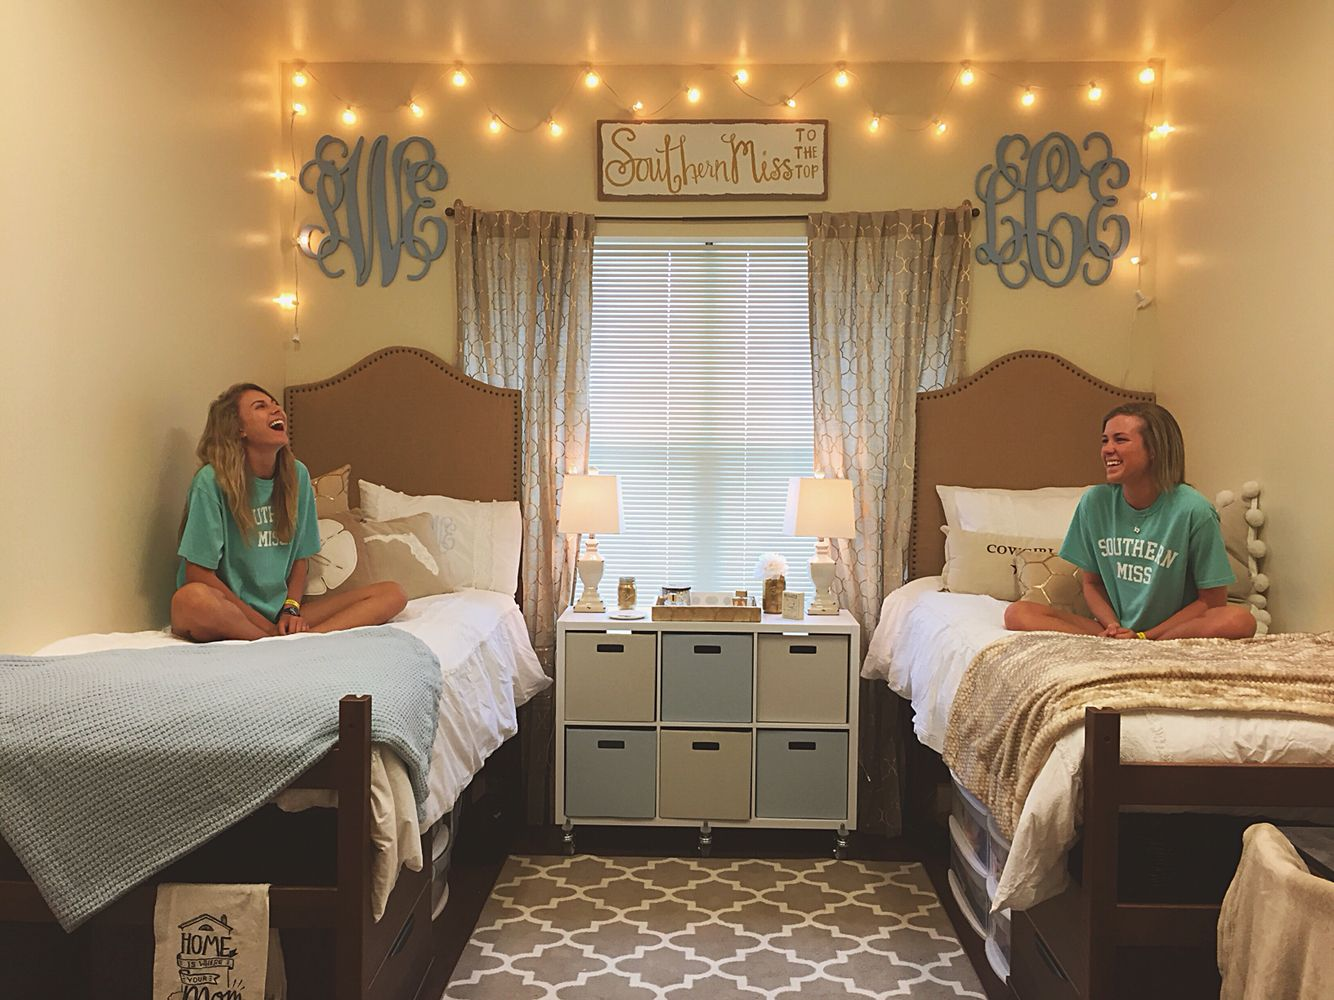 Southern Miss to the Top! #room534 #SMTTT LAUREN CASEY  ~ 063030_Southern Dorm Room Ideas